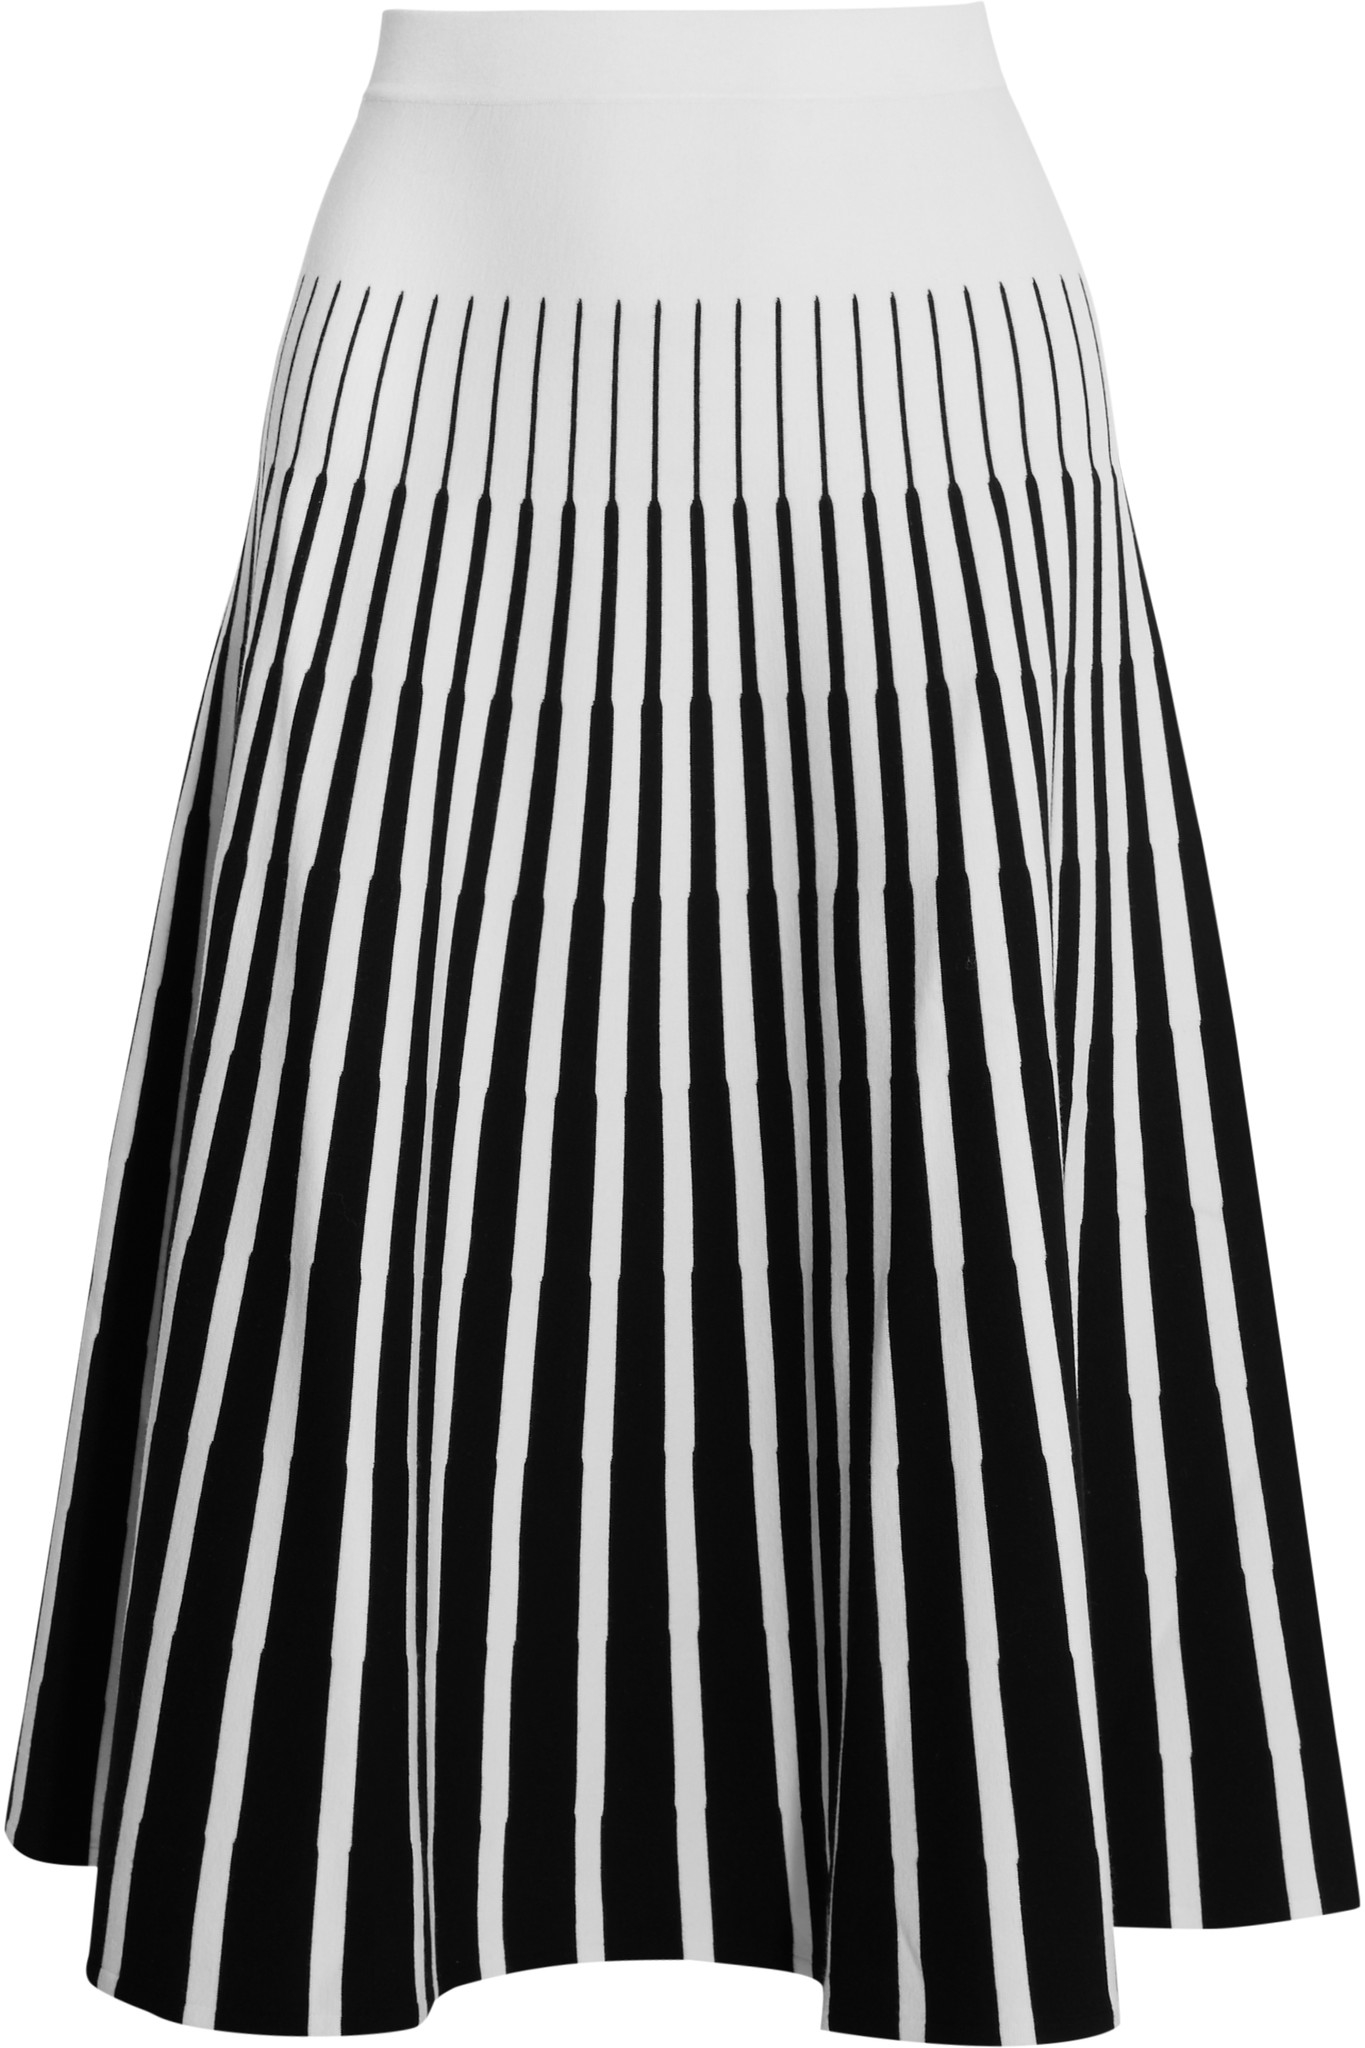 Le Meilleur Tomas Maier Striped Jersey Skirt In White Lyst Ce Mois Ci